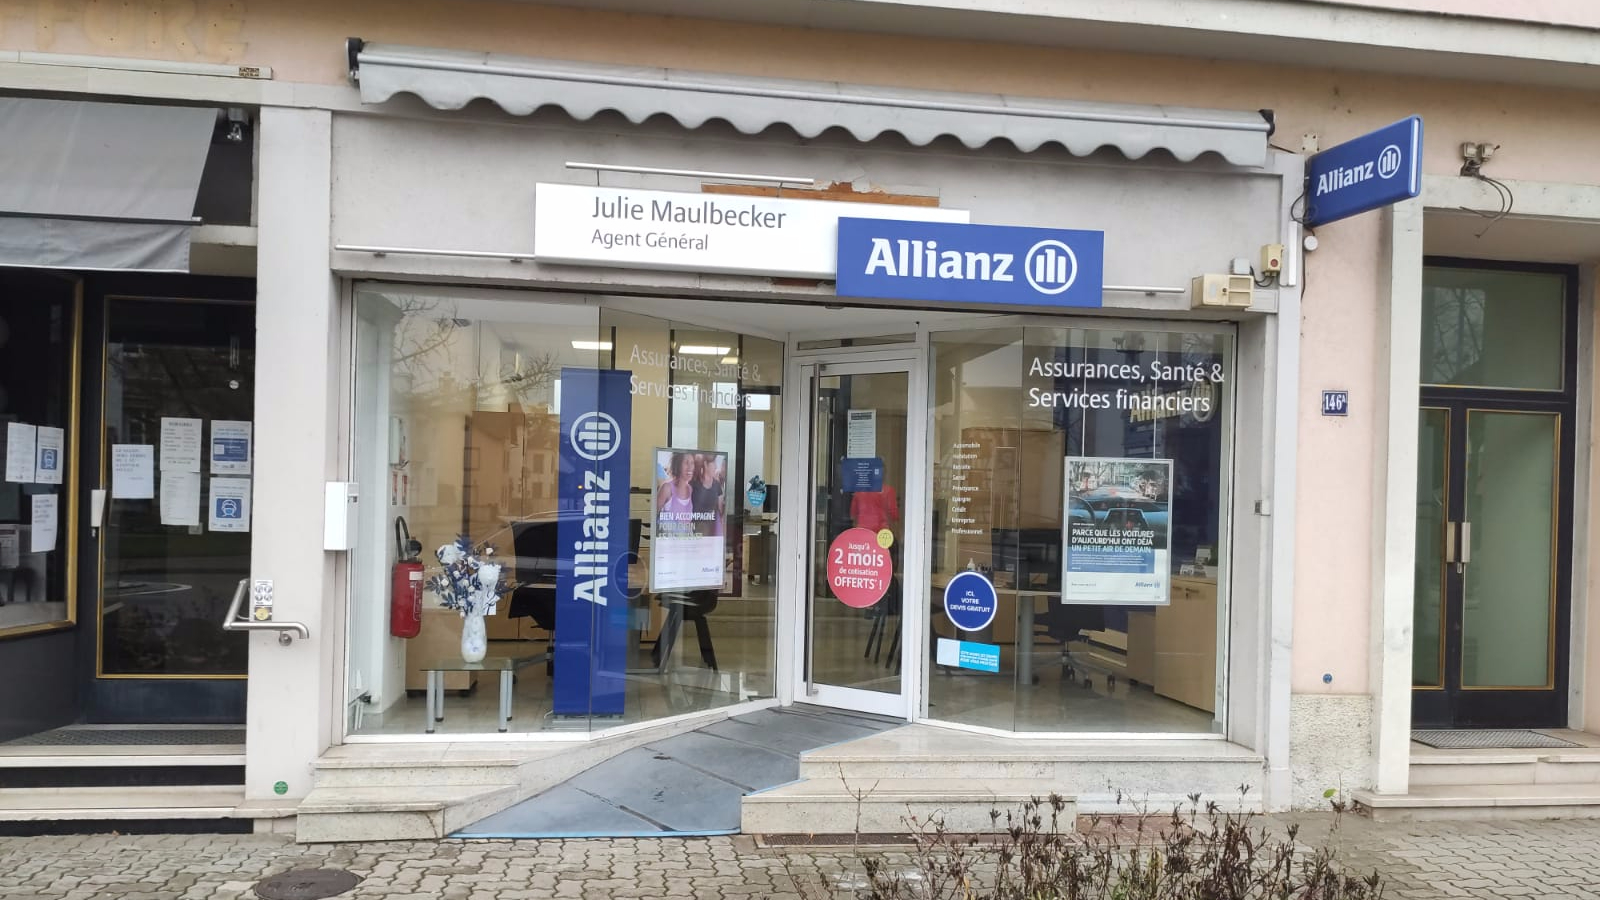 Allianz ILLKIRCH - Julie MAULBECKER